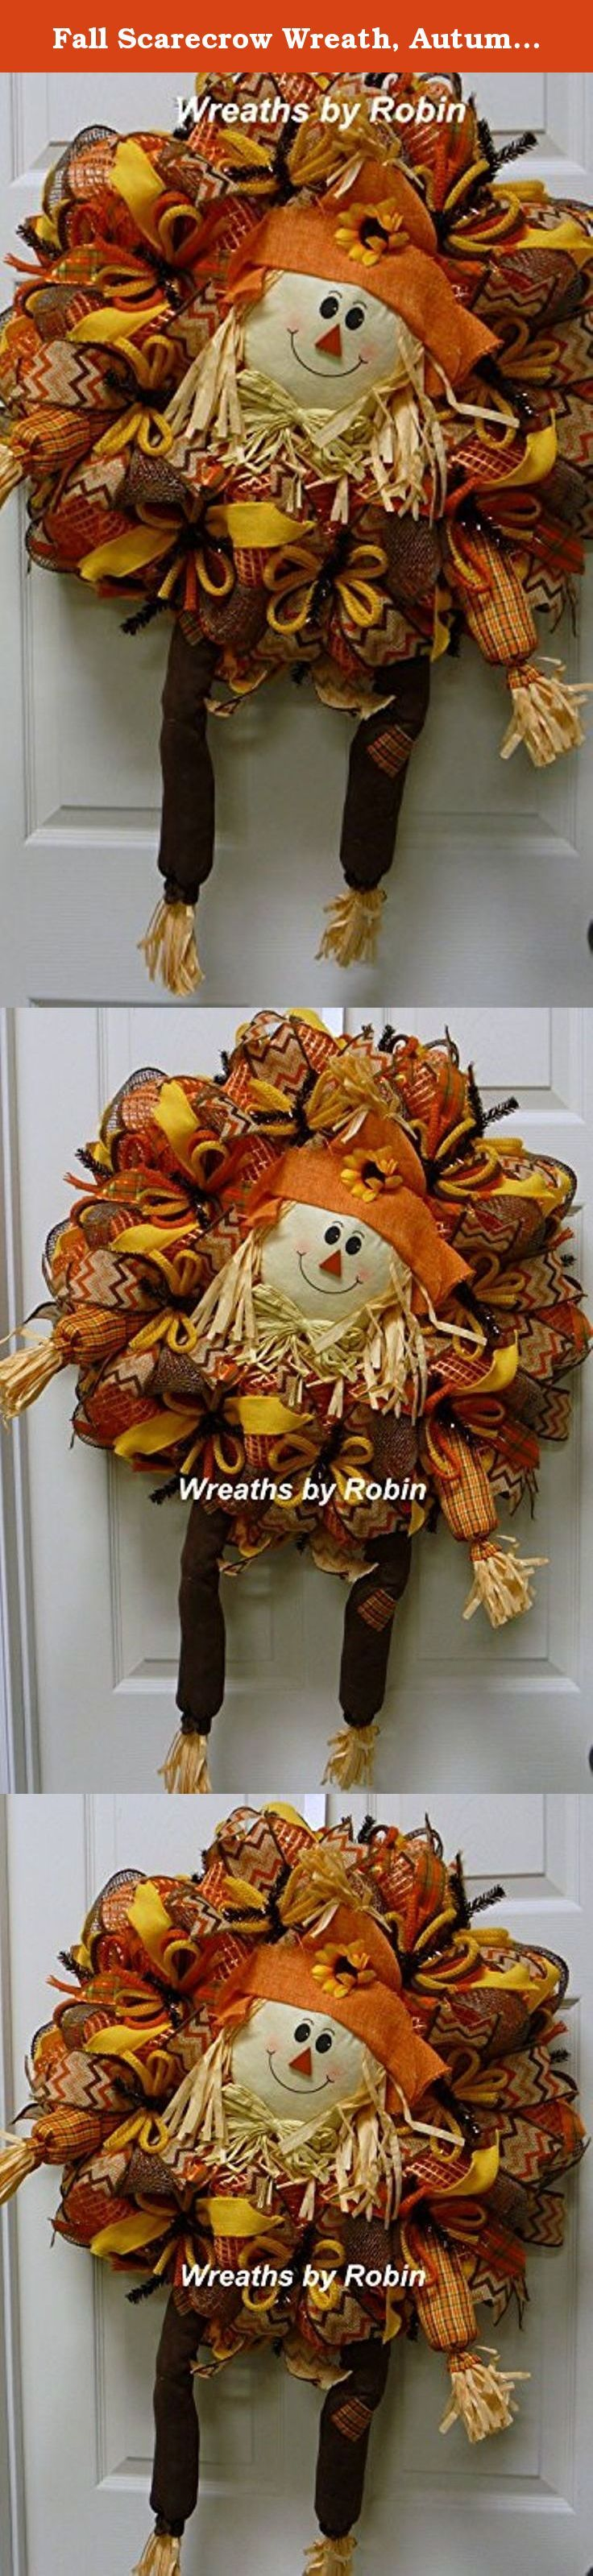 Fall Scarecrow Wreath, Autumn Wreaths, Scarecrow. Boxed and ready for shipping! This cute wreath will look great on your front door for fall this year. It was made on a deco mesh work form with web mesh, four decorative ribbons, 3 jute flex tubing and a large scarecrow in the center! The main part of the wreath is 24 inches in diameter. The legs hang down below the wreath 12-13 inches. Thank you for shopping with Wreaths by Robin.